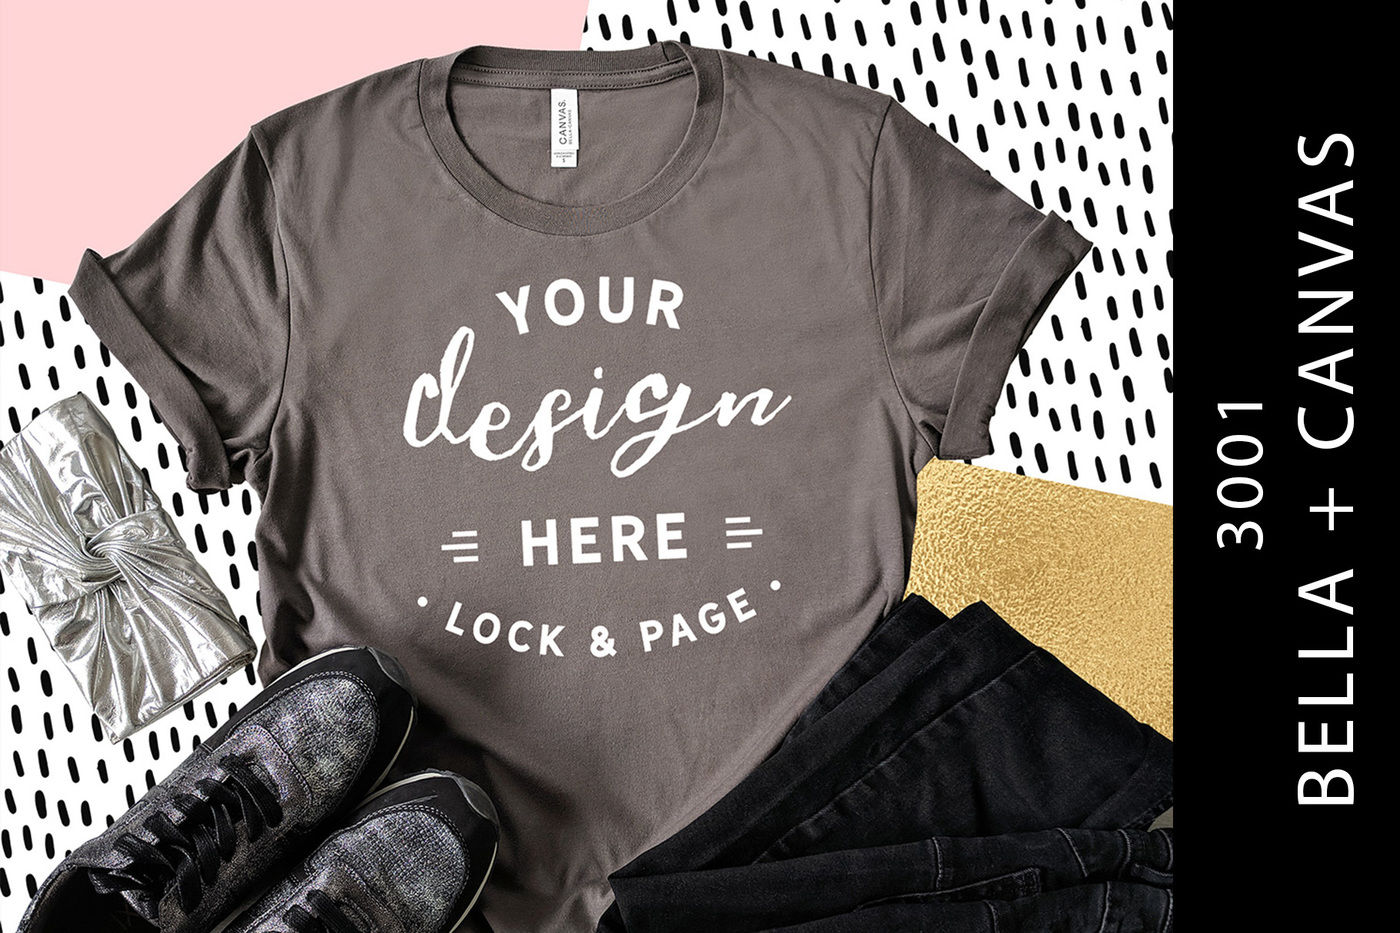 b8eed3559 Asphalt Bella Canvas 3001 Feminine T-Shirt Mockup By Lock and Page ...